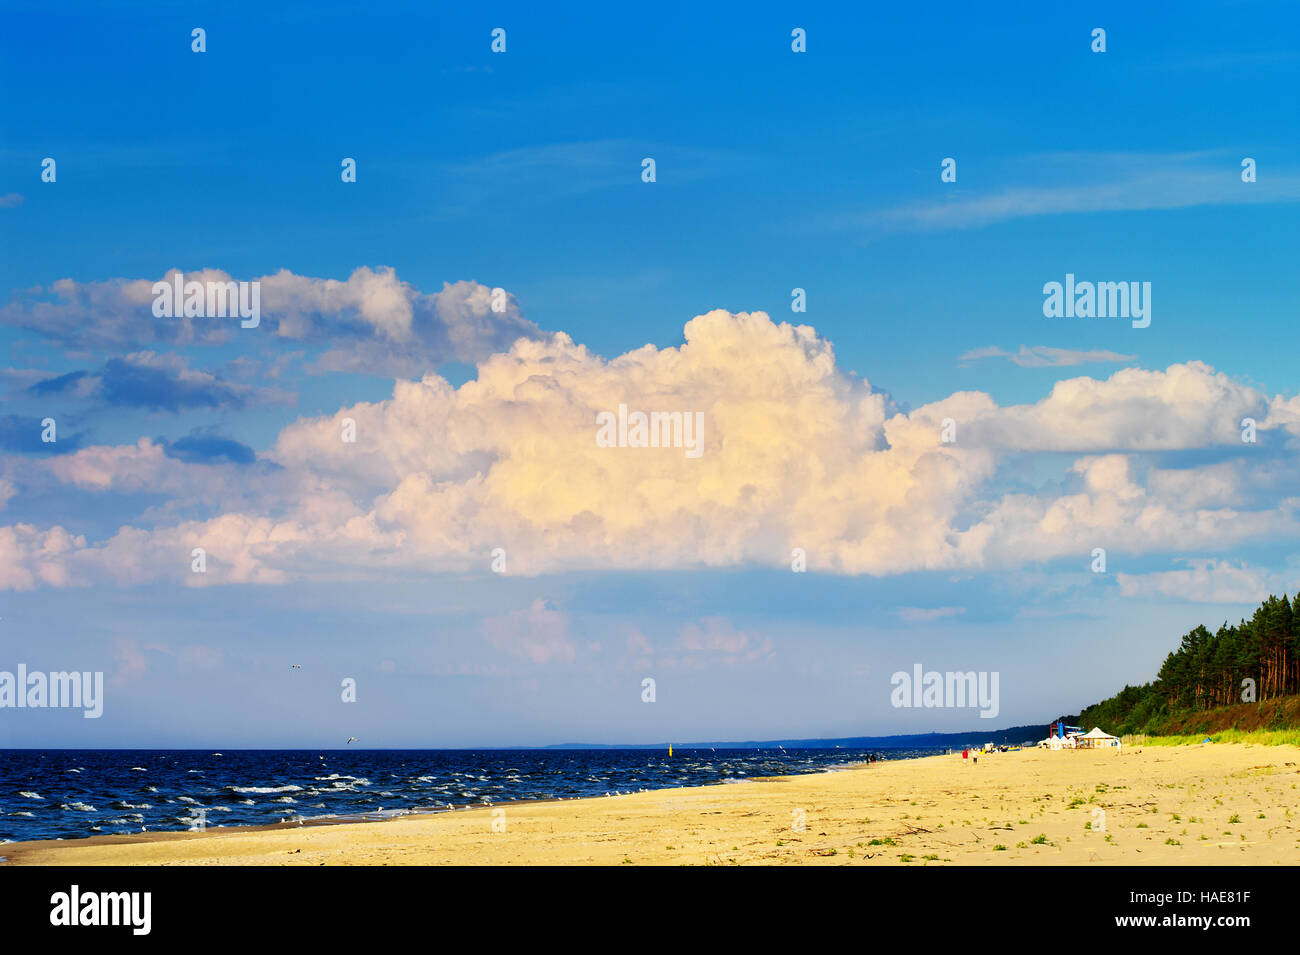 Cloudscape with huge cumulonimbus cloud formation over the beach at Baltic sea. Stegna, Pomerania, northern Poland. - Stock Image